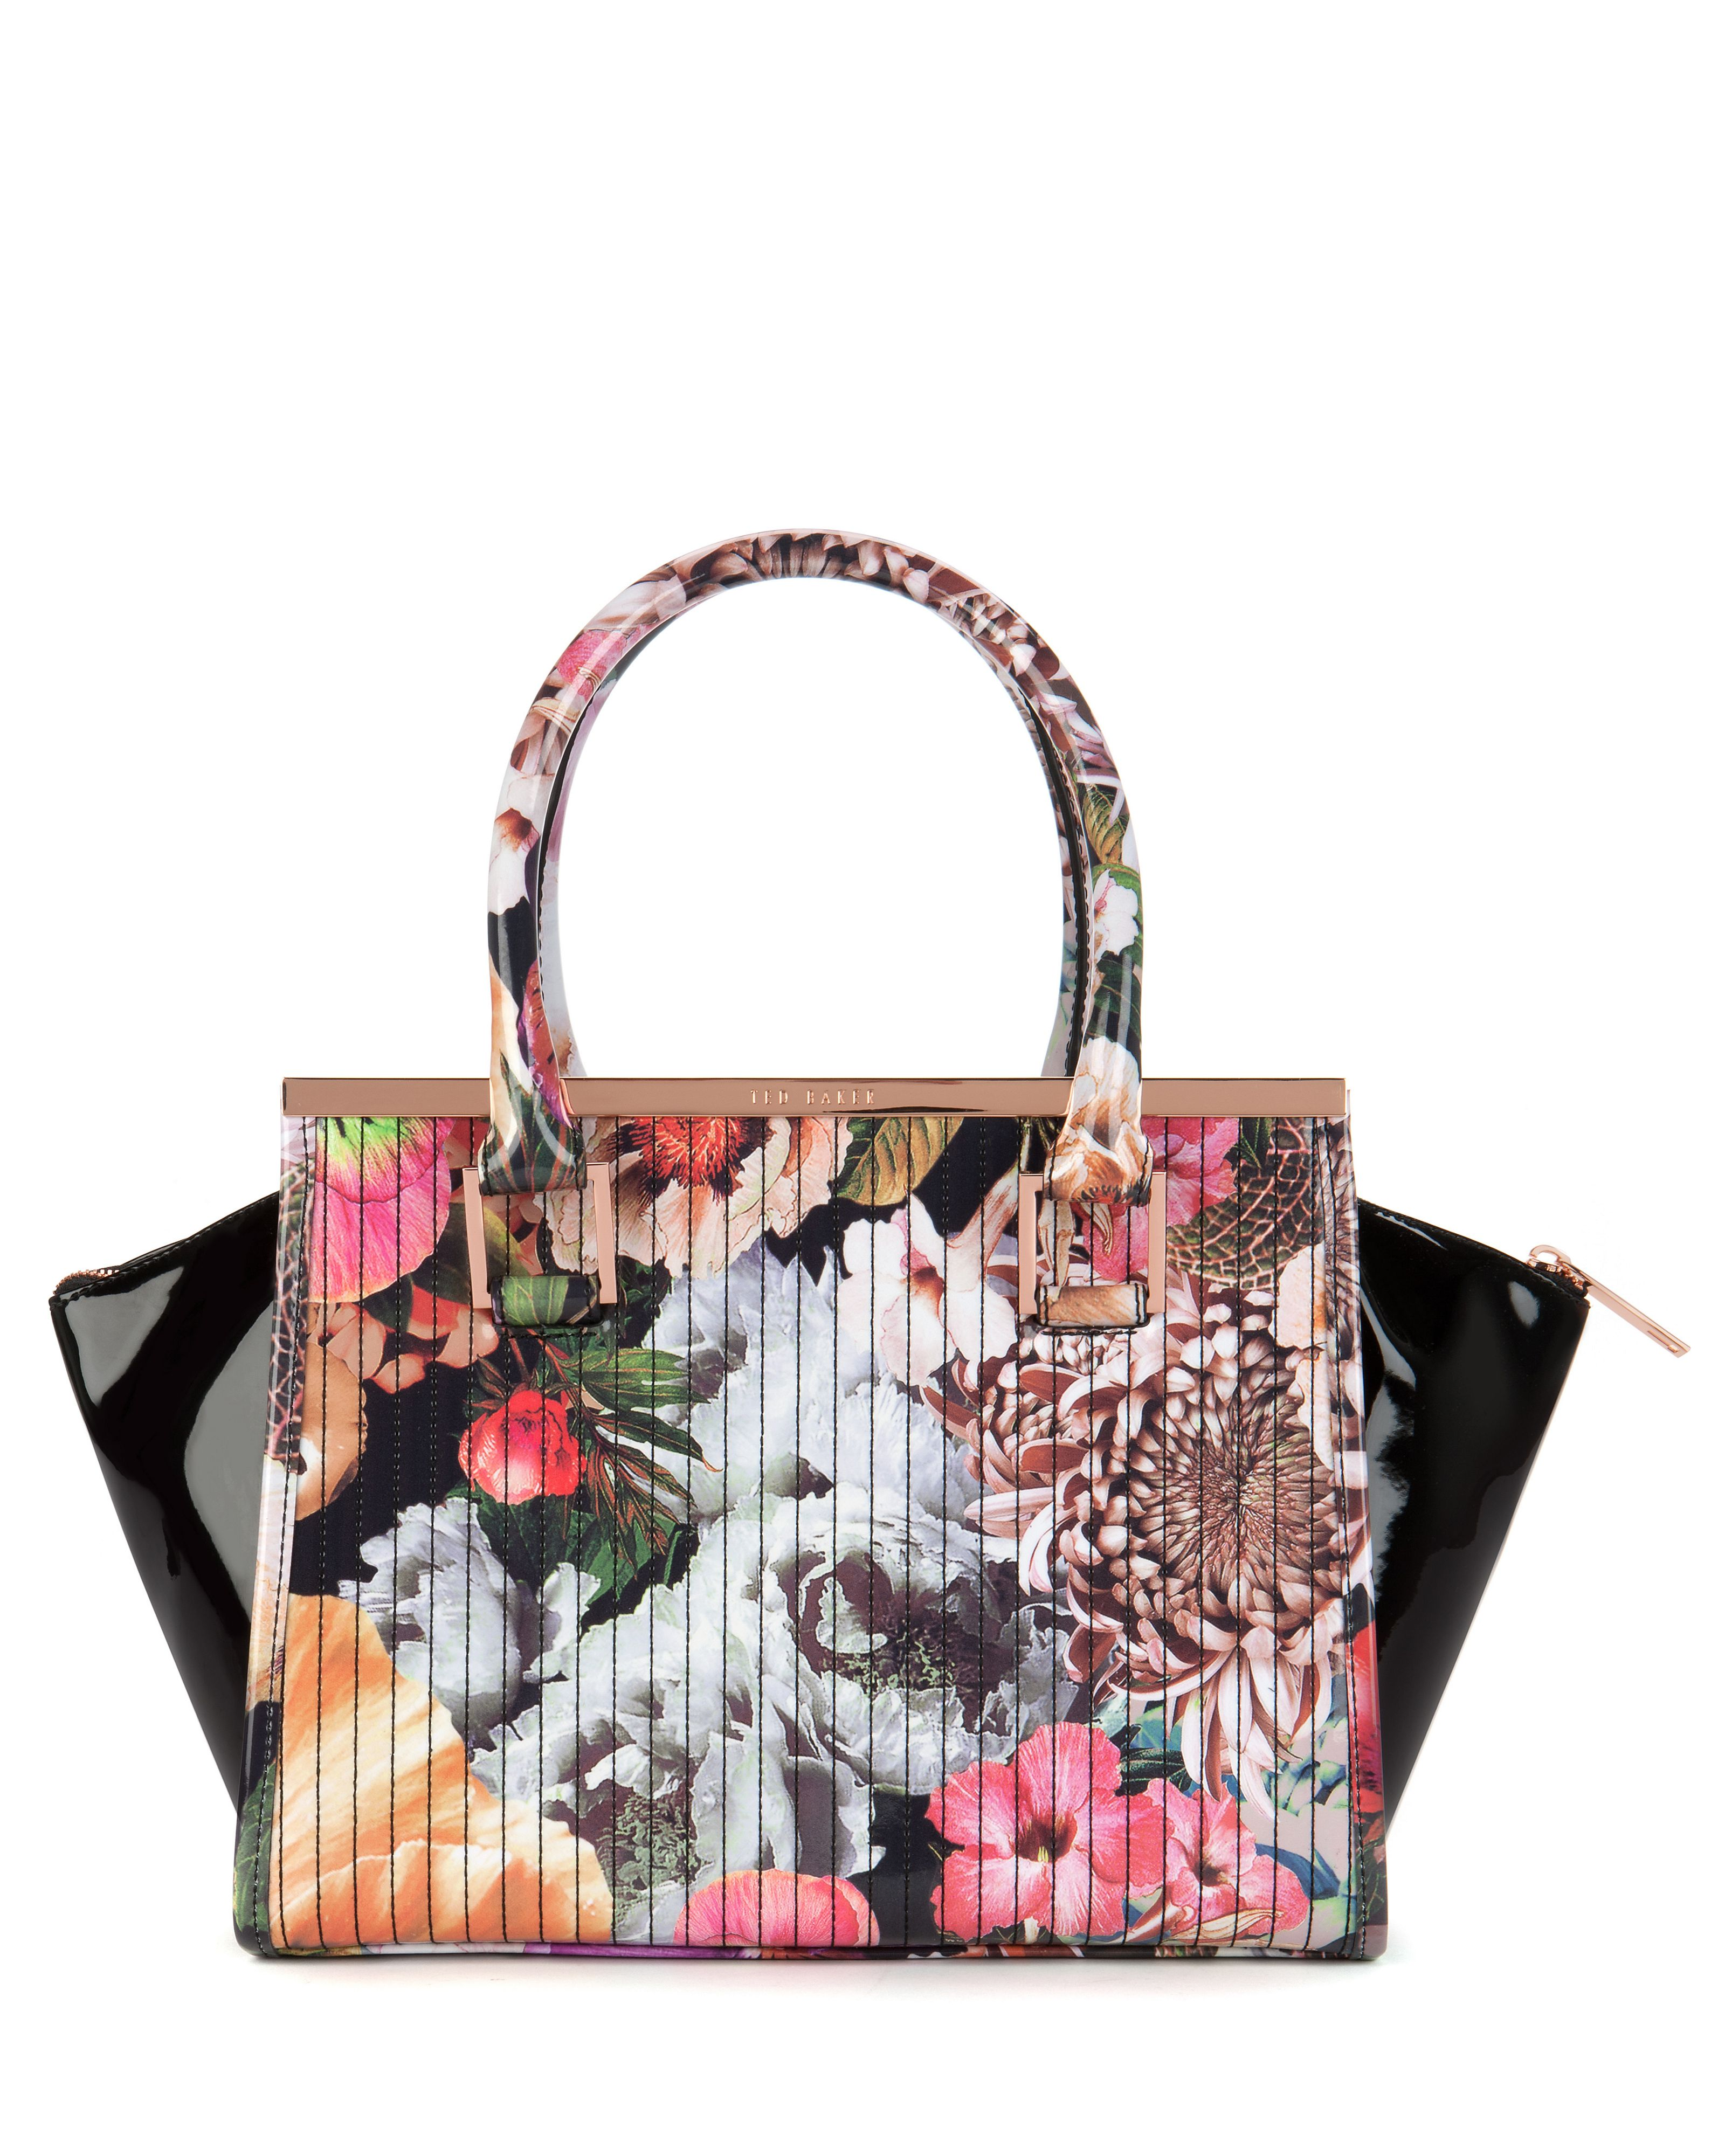 Haillie floral printed tote bag